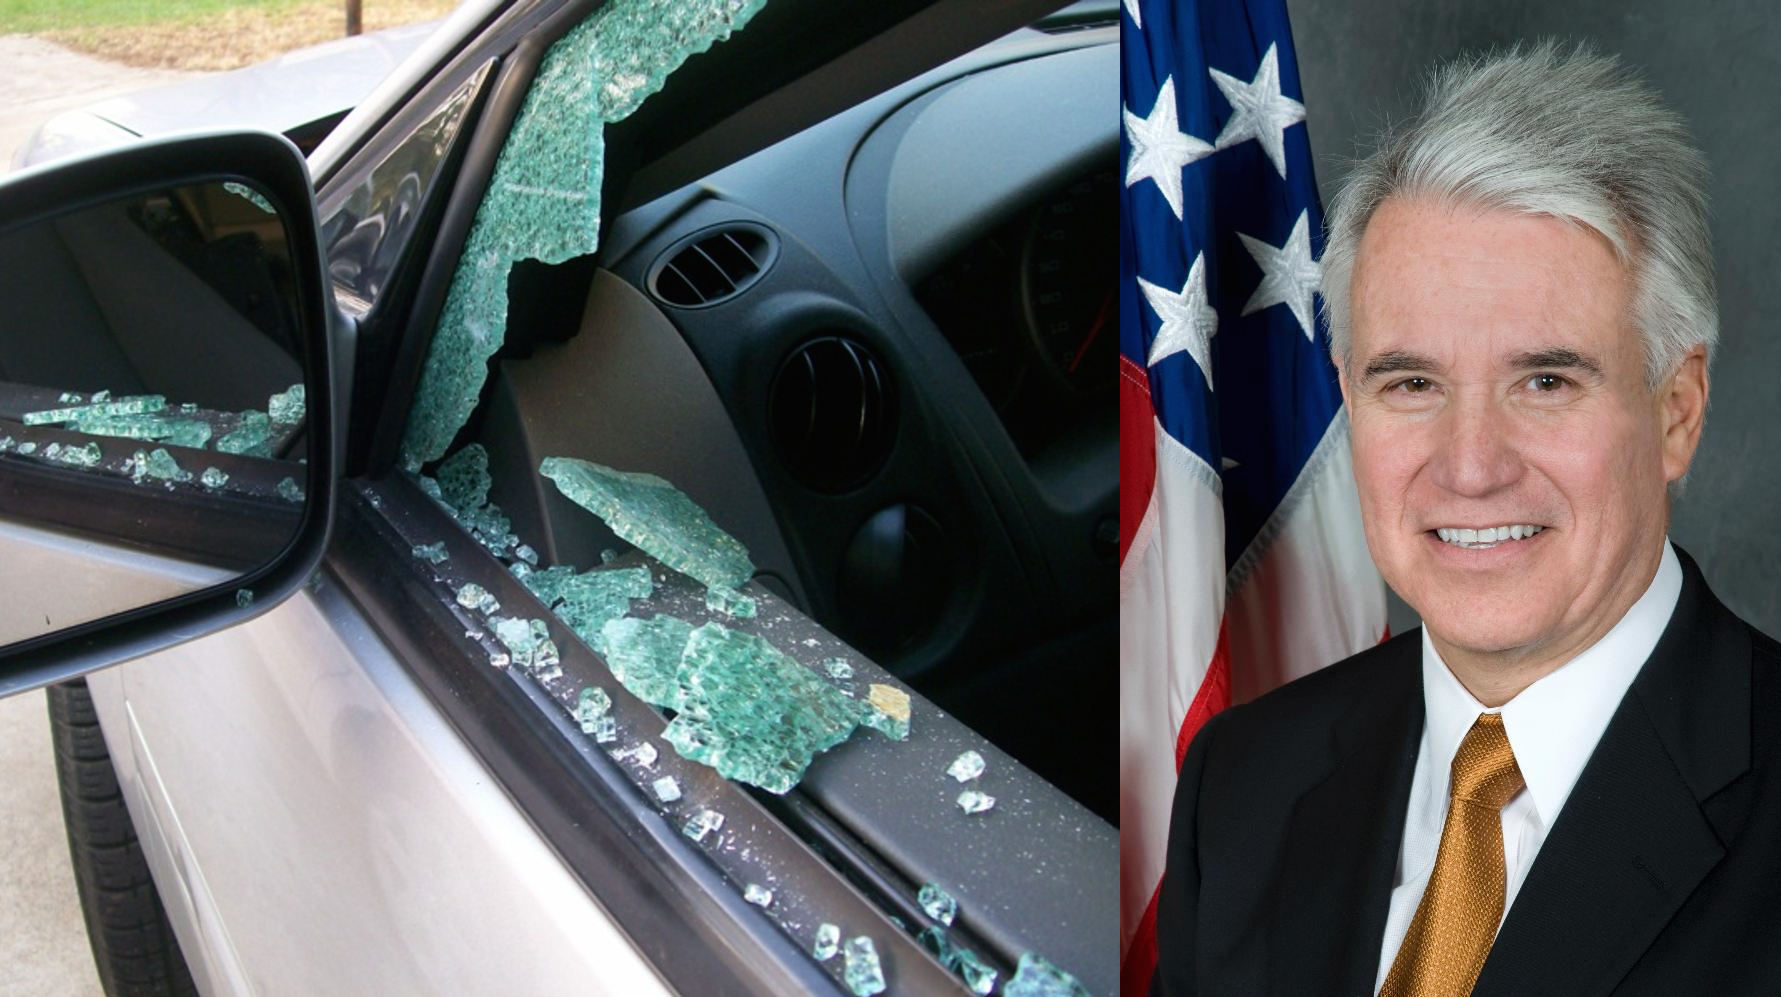 San Francisco District Attorney George Gascon is asking for an additional $1 million to fight an epidemic of car break-ins. Would this be money well spent?